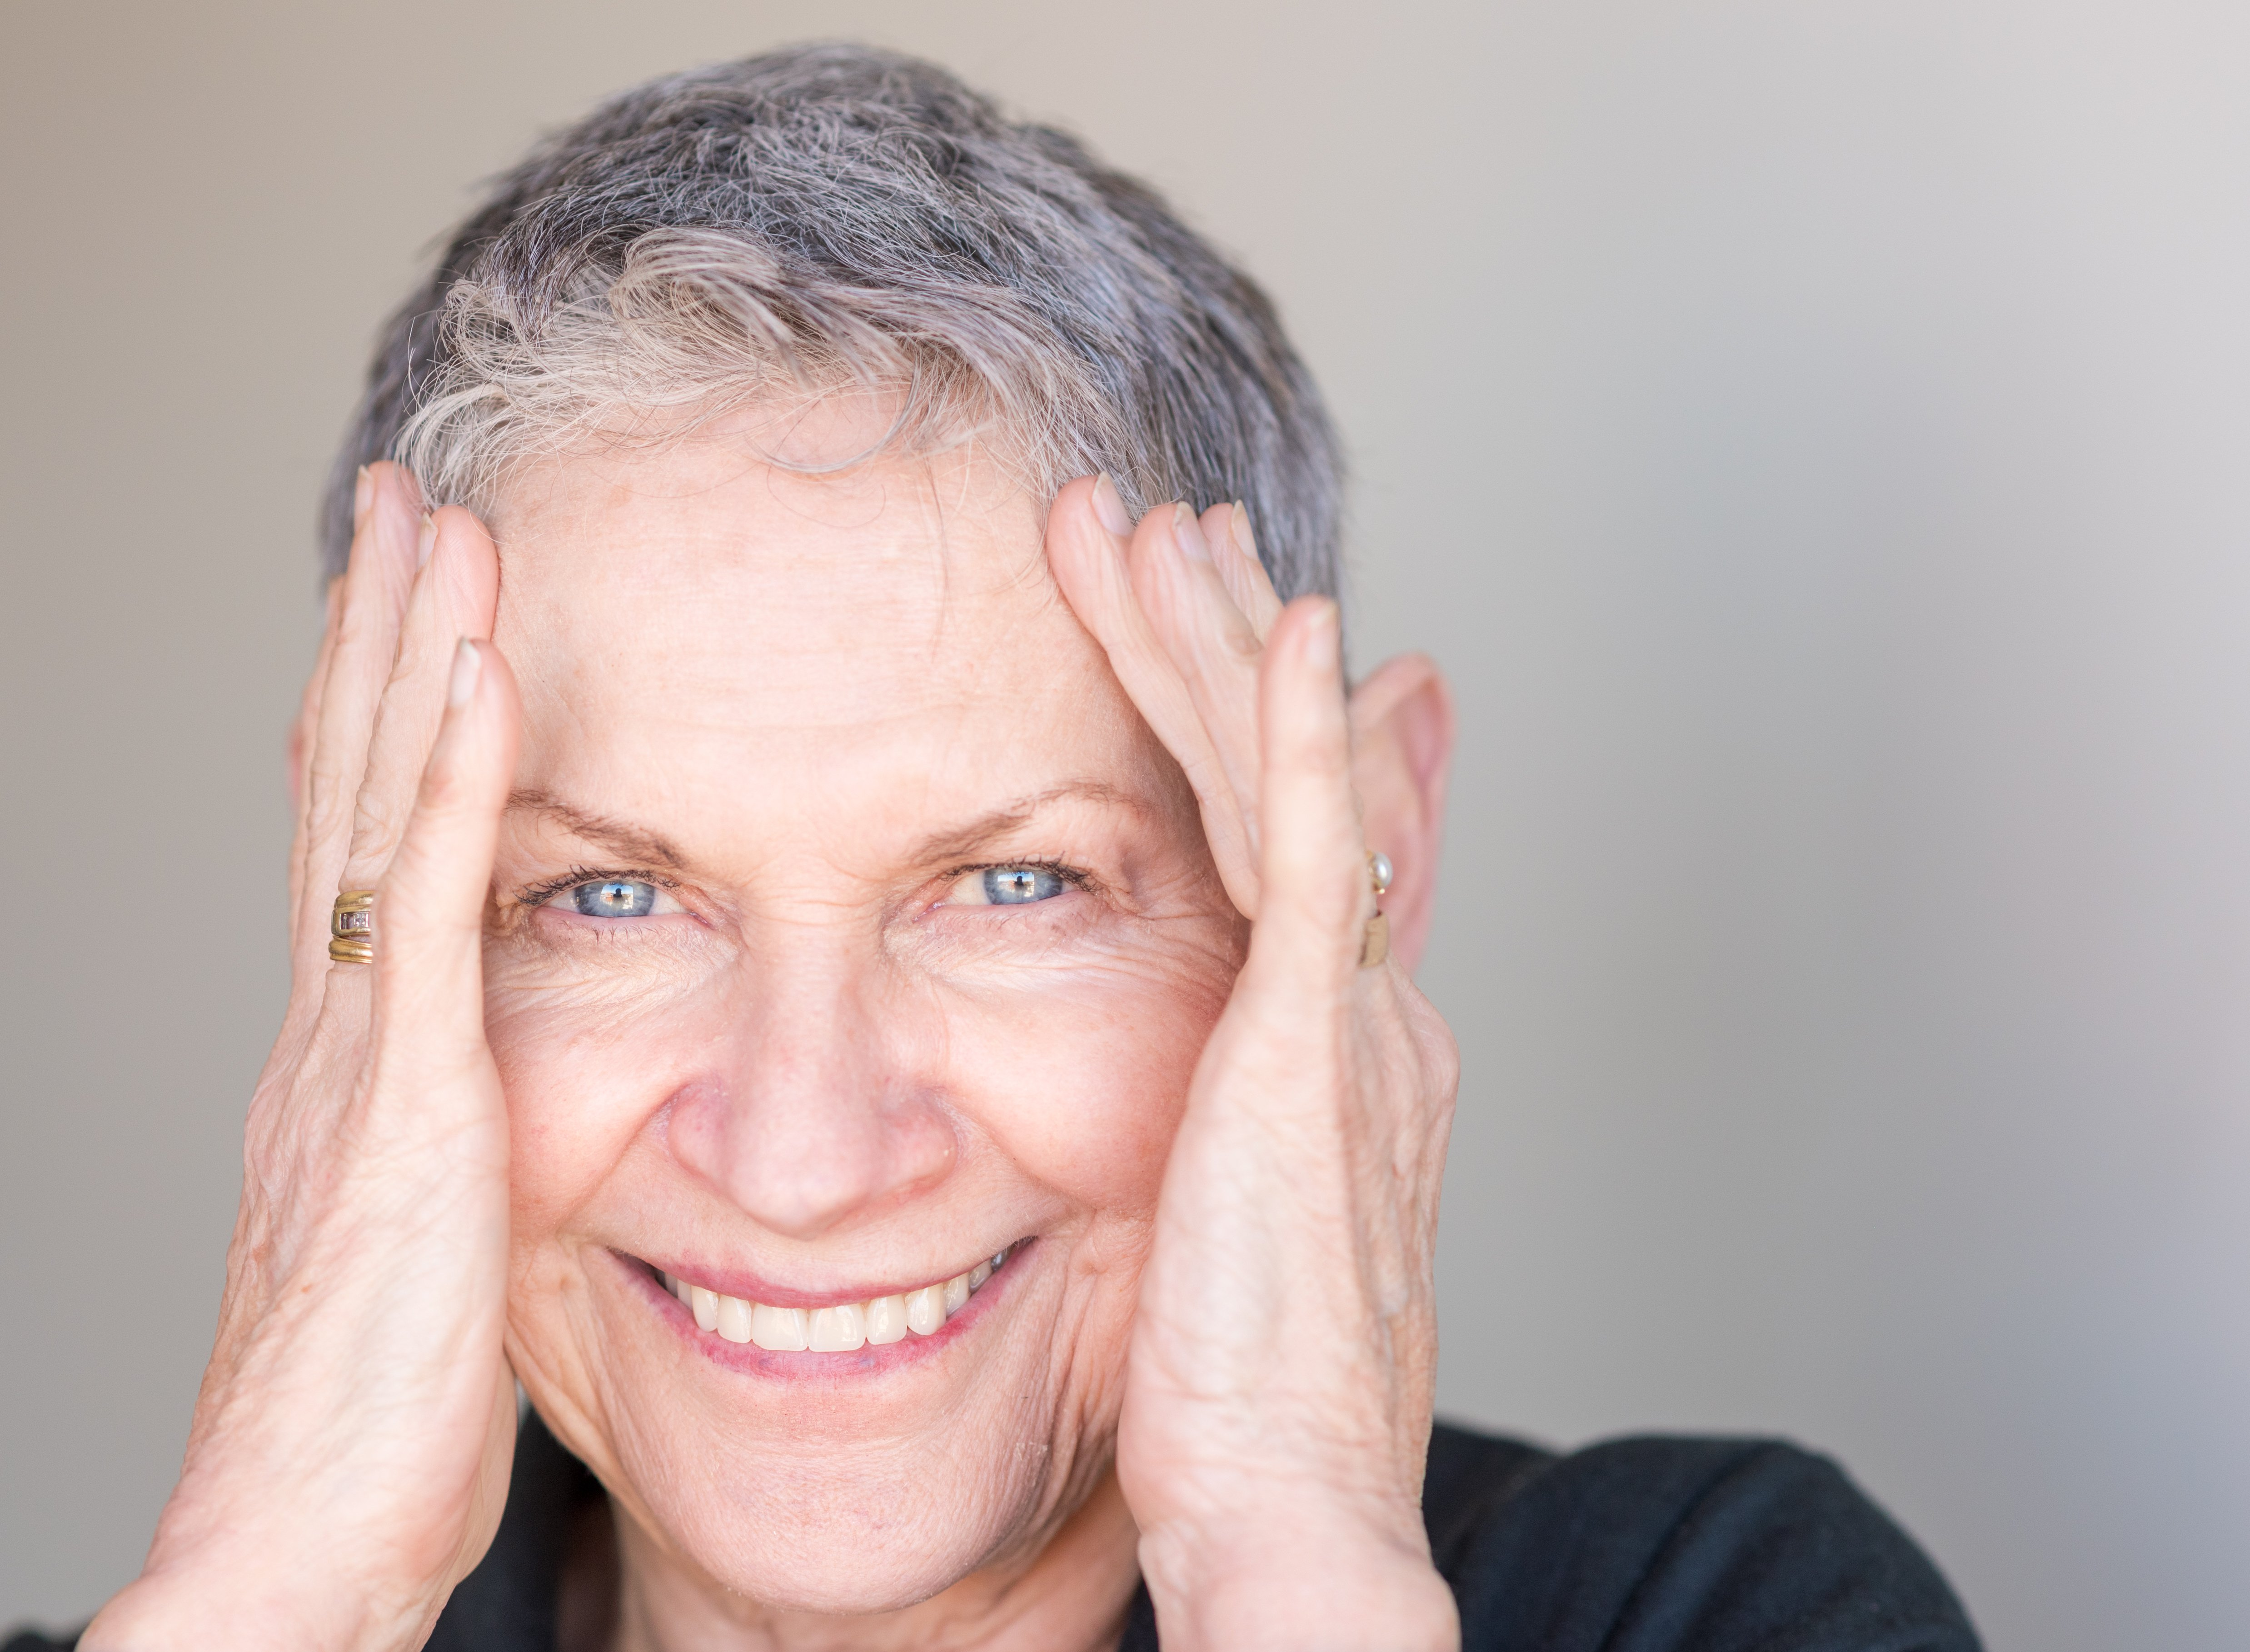 Older woman looking into camera and smiling | Photo: Shutterstock